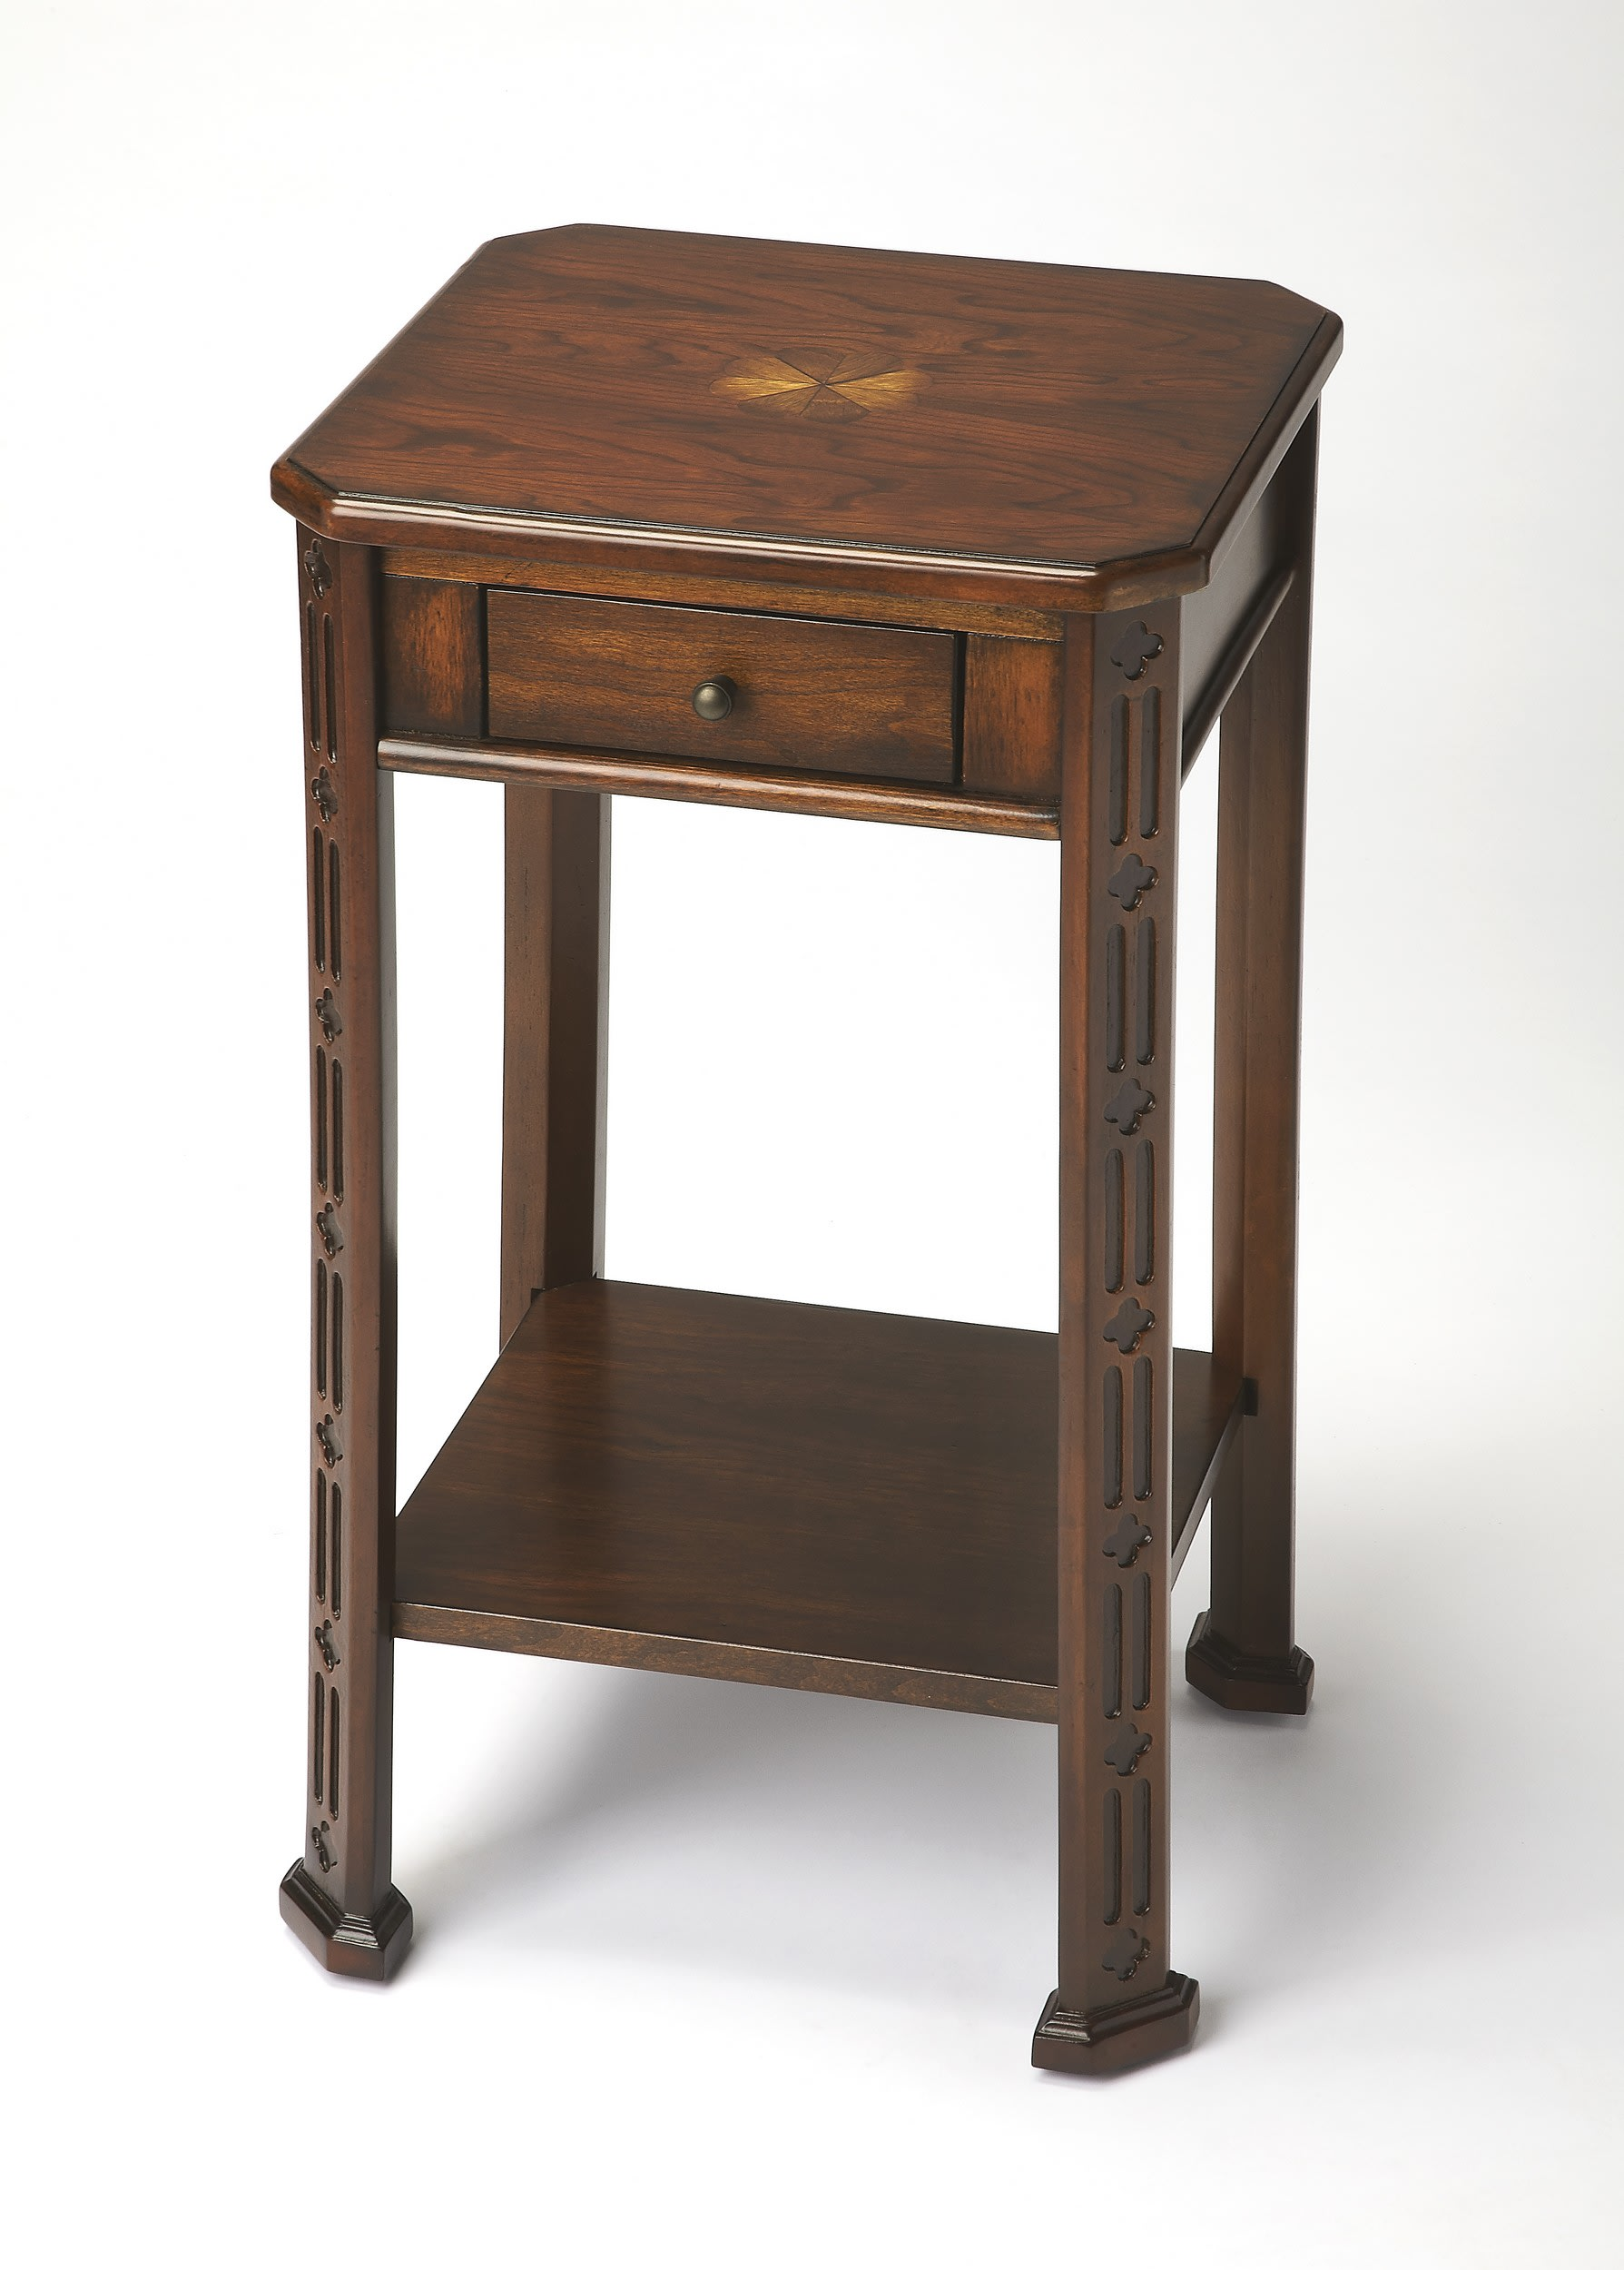 butler specialty masterpiece plantation cherry one drawer accent butlerspecialty table tiffany peacock floor lamp portable grill narrow console inches deep elastic covers drum